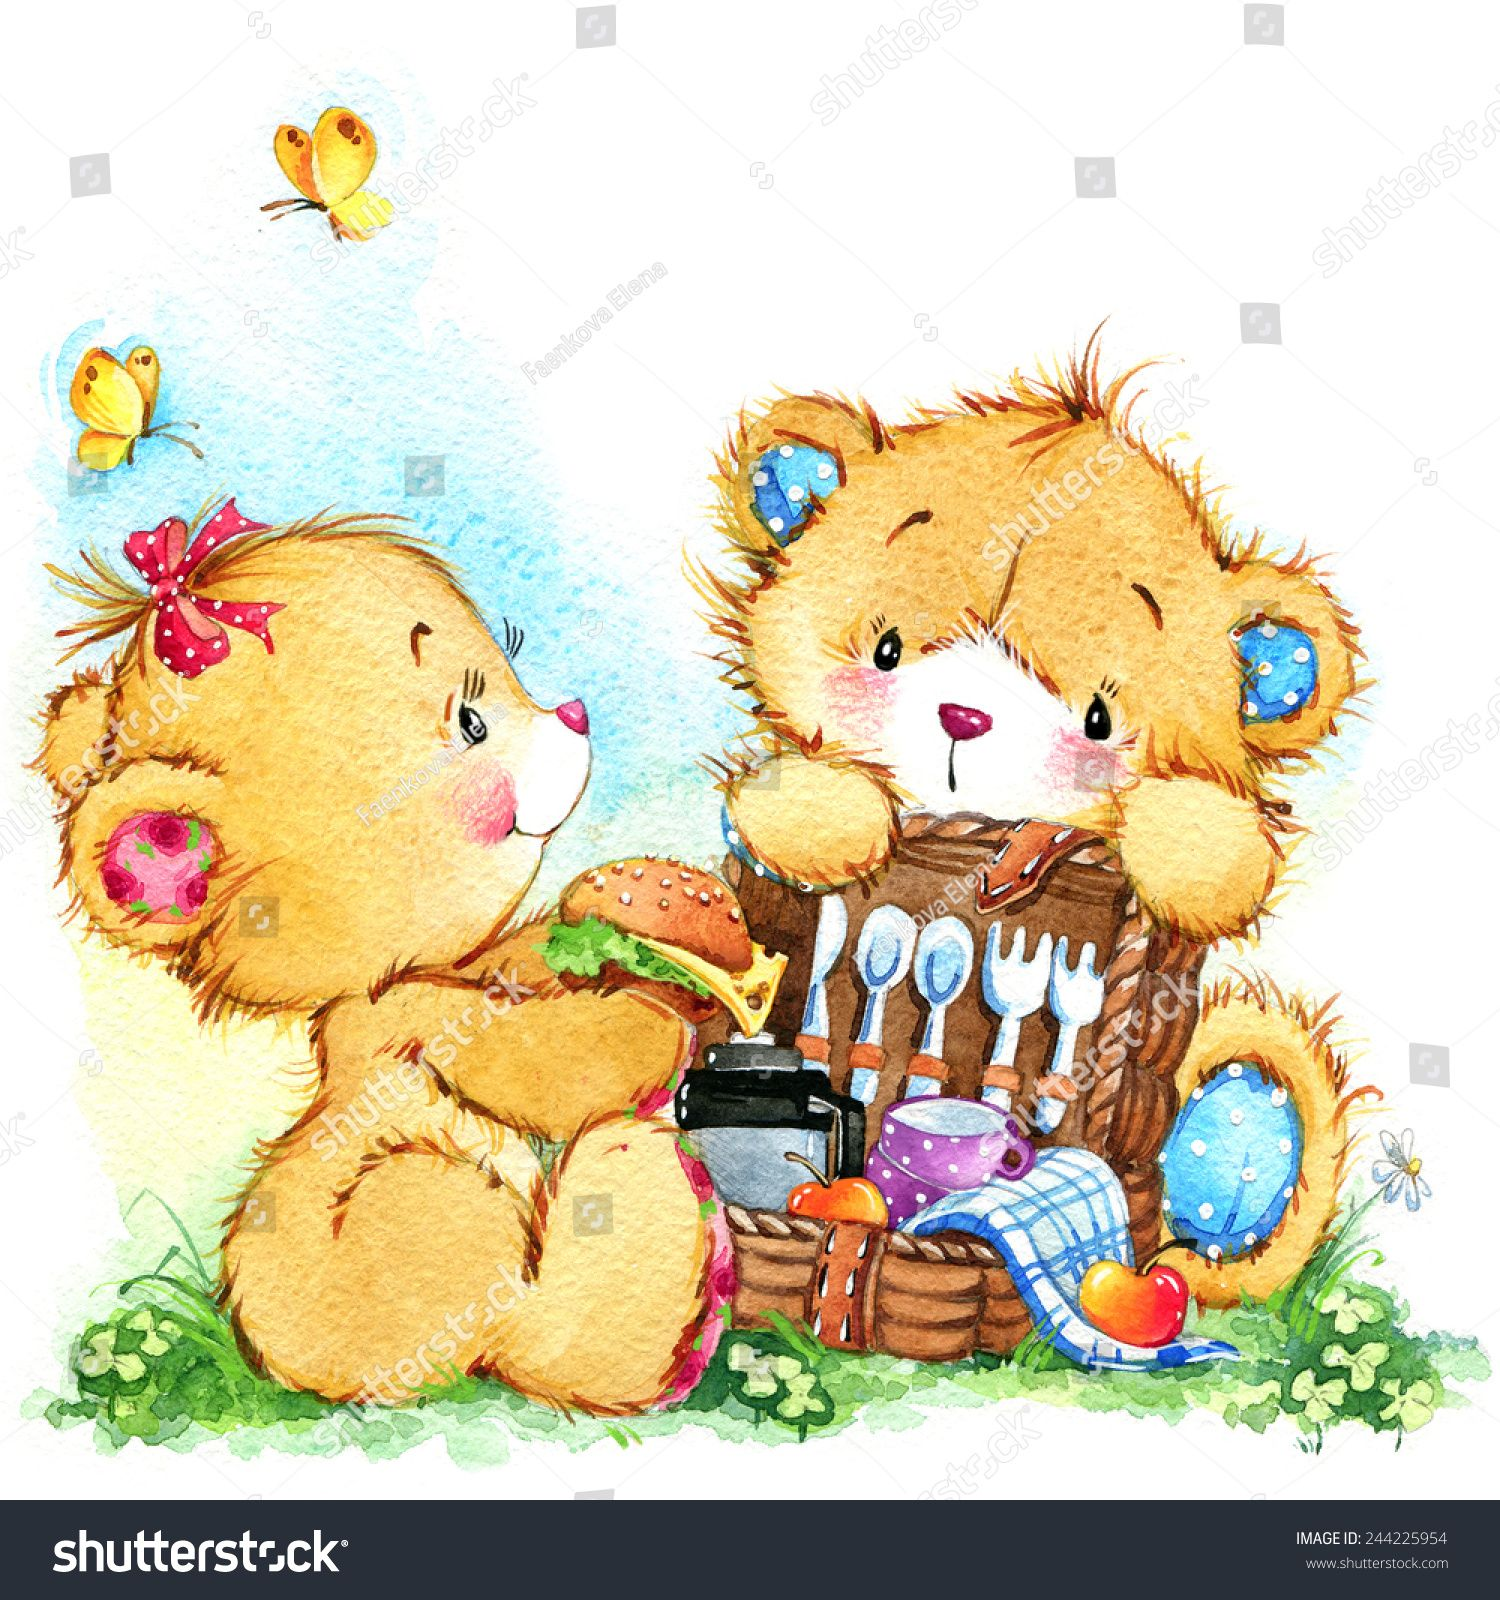 Teddy Bear And Picnic For Two Background For Greetings Cards